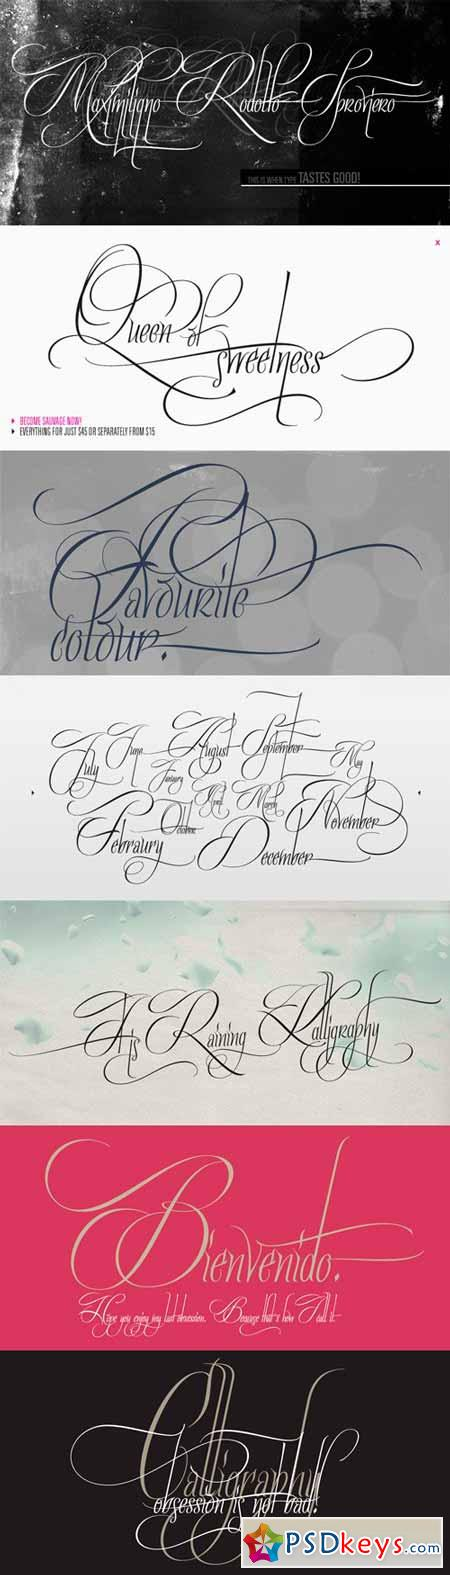 Quijote Sauvage Font Family - 8 Fonts for $115